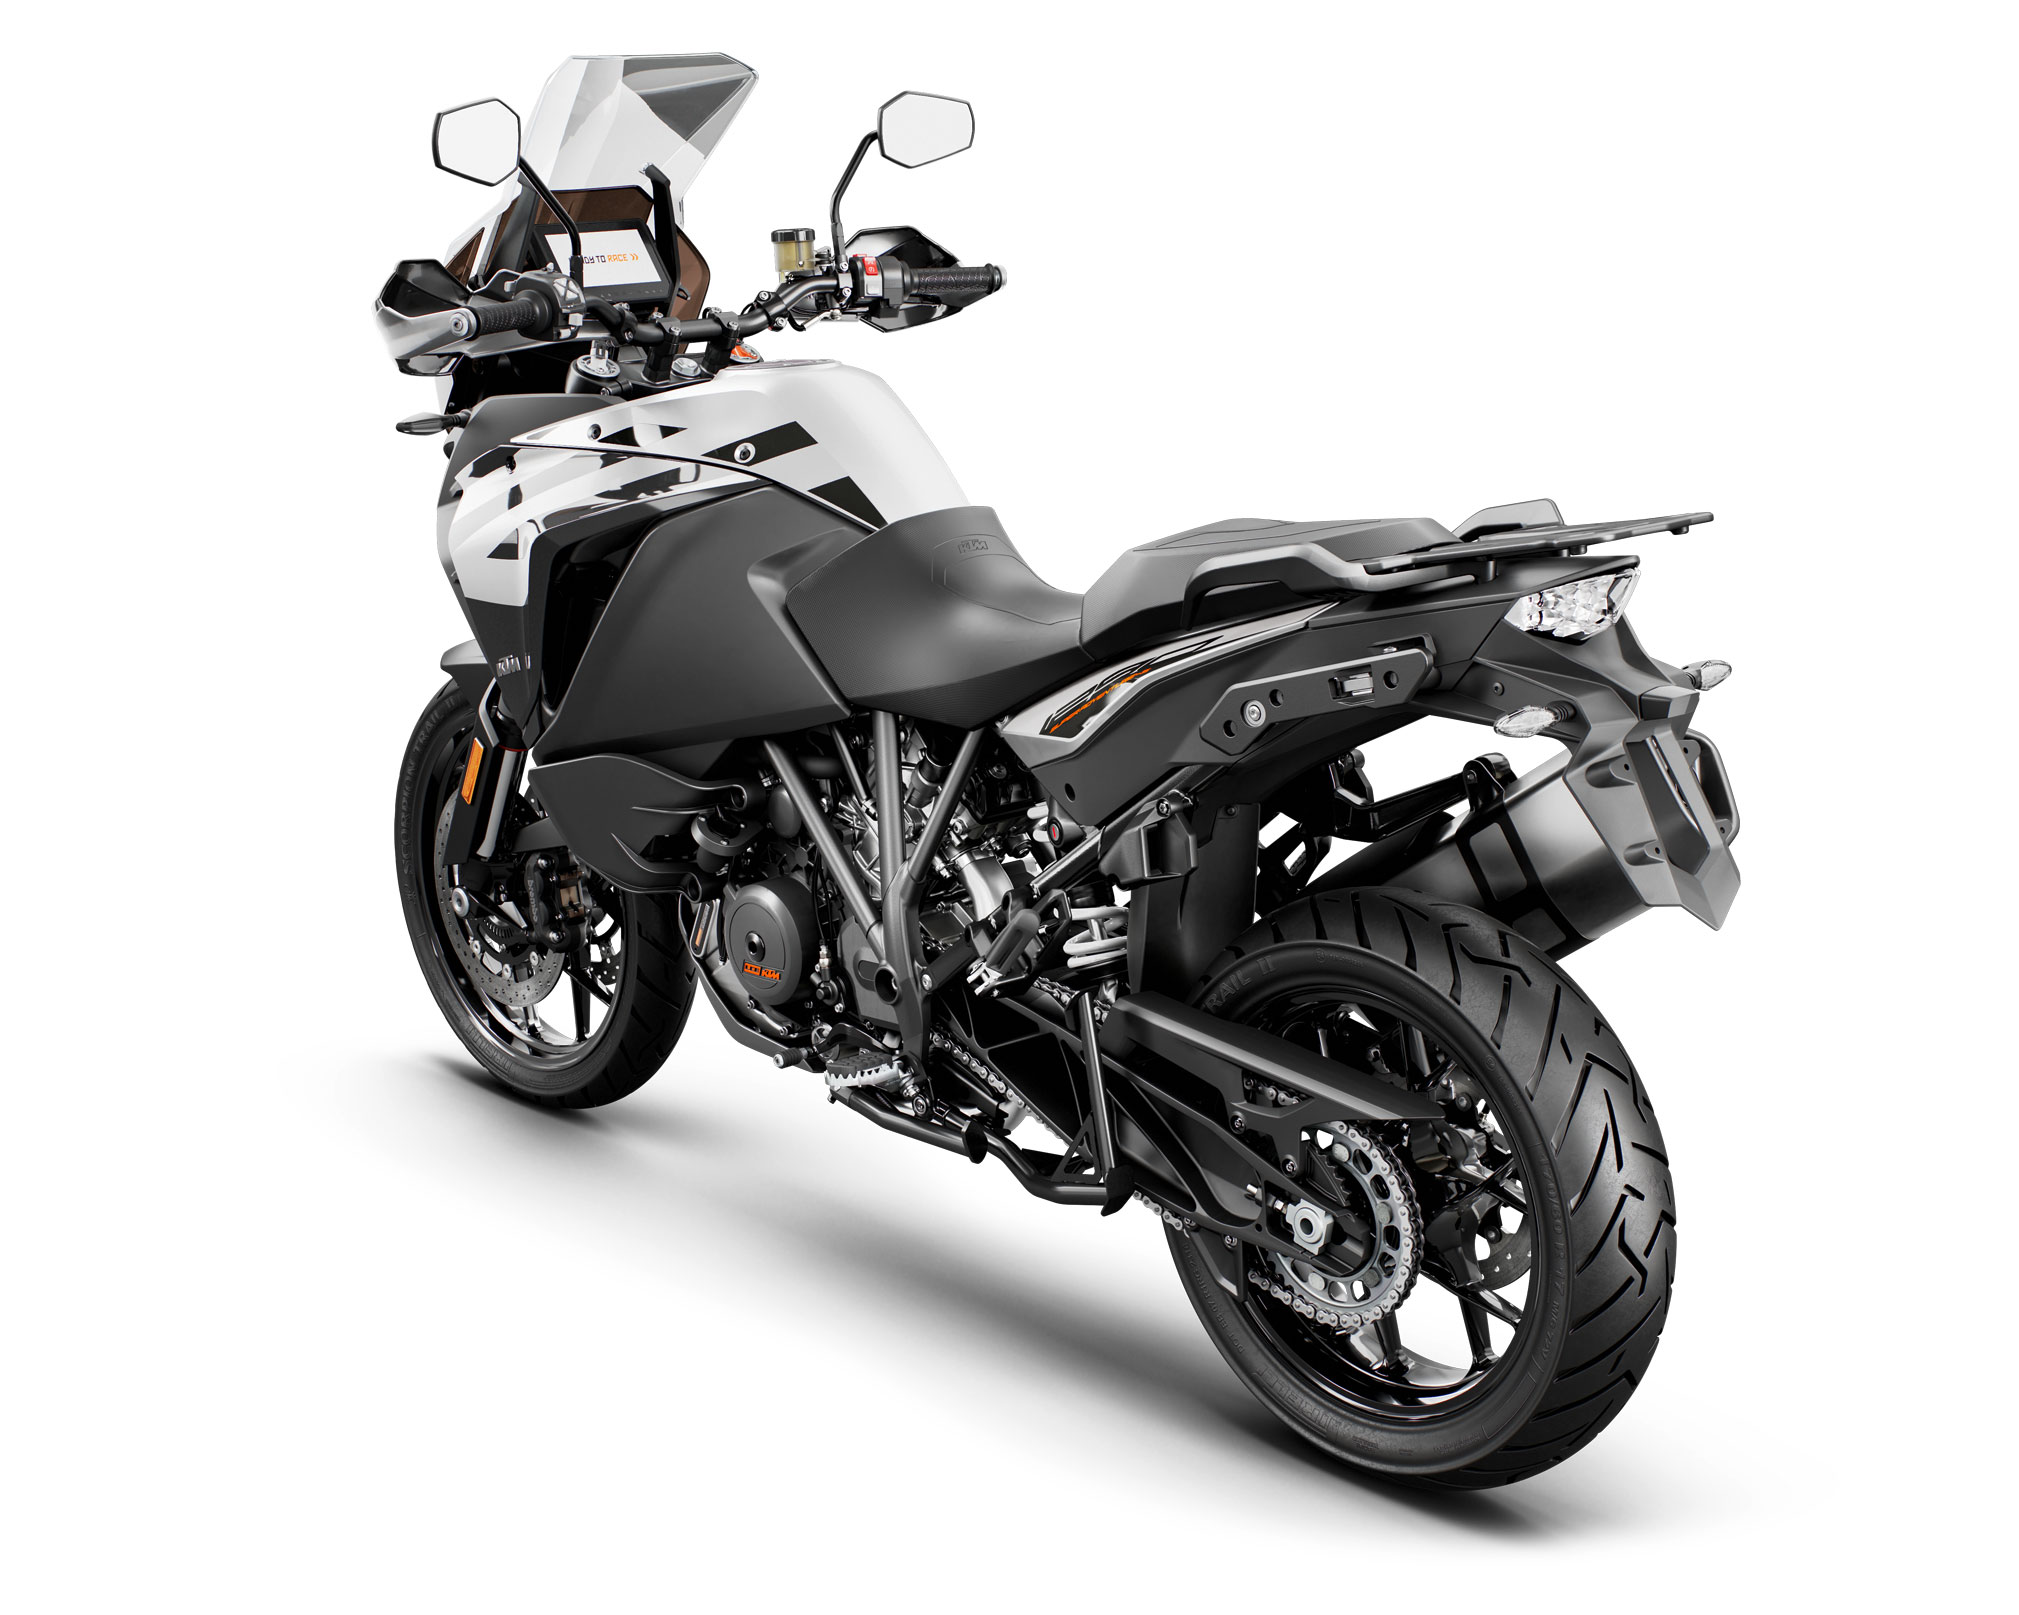 2019 ktm 1290 super adventure s guide total motorcycle. Black Bedroom Furniture Sets. Home Design Ideas